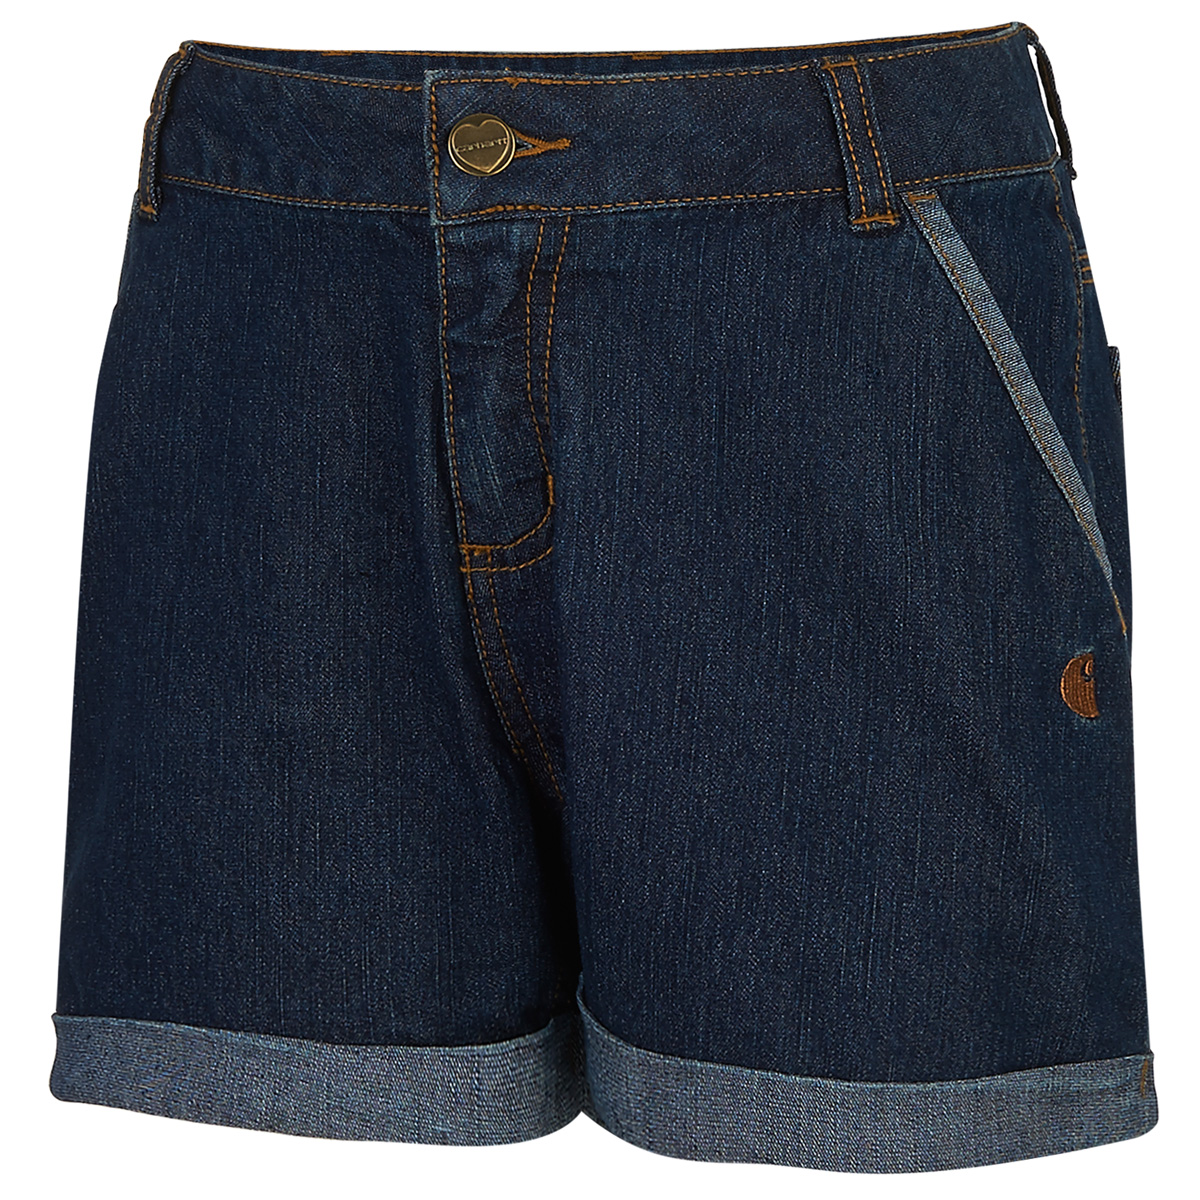 Carhartt Girls' Denim Short CH9251